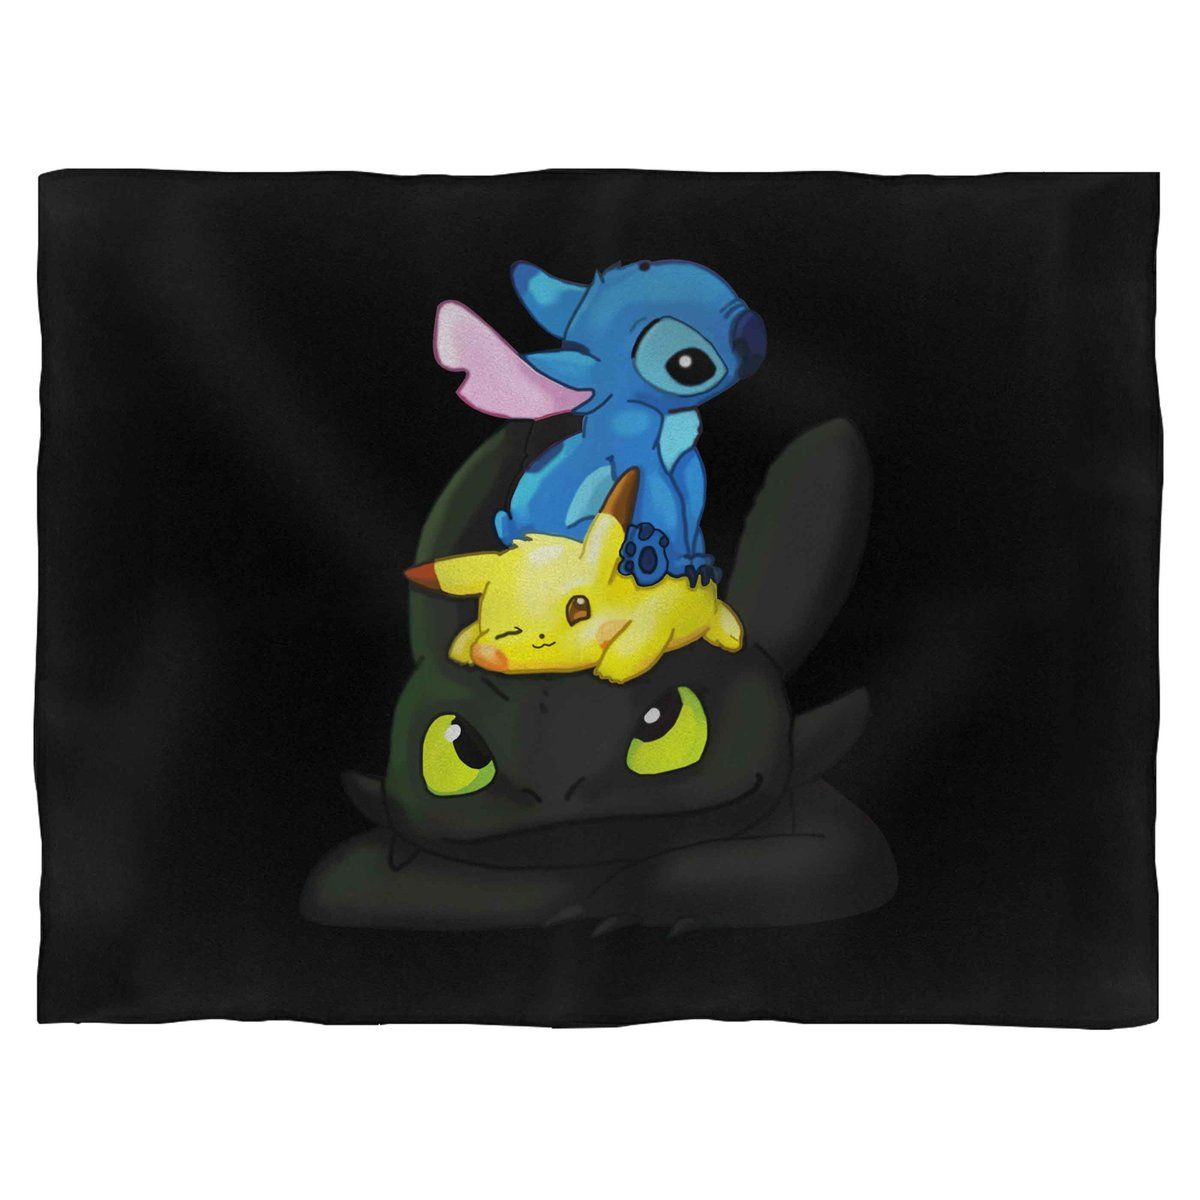 Pikachu And Toothless And Stitch Together Blanket Toothless And Stitch Stitch And Pikachu Cute Toothless